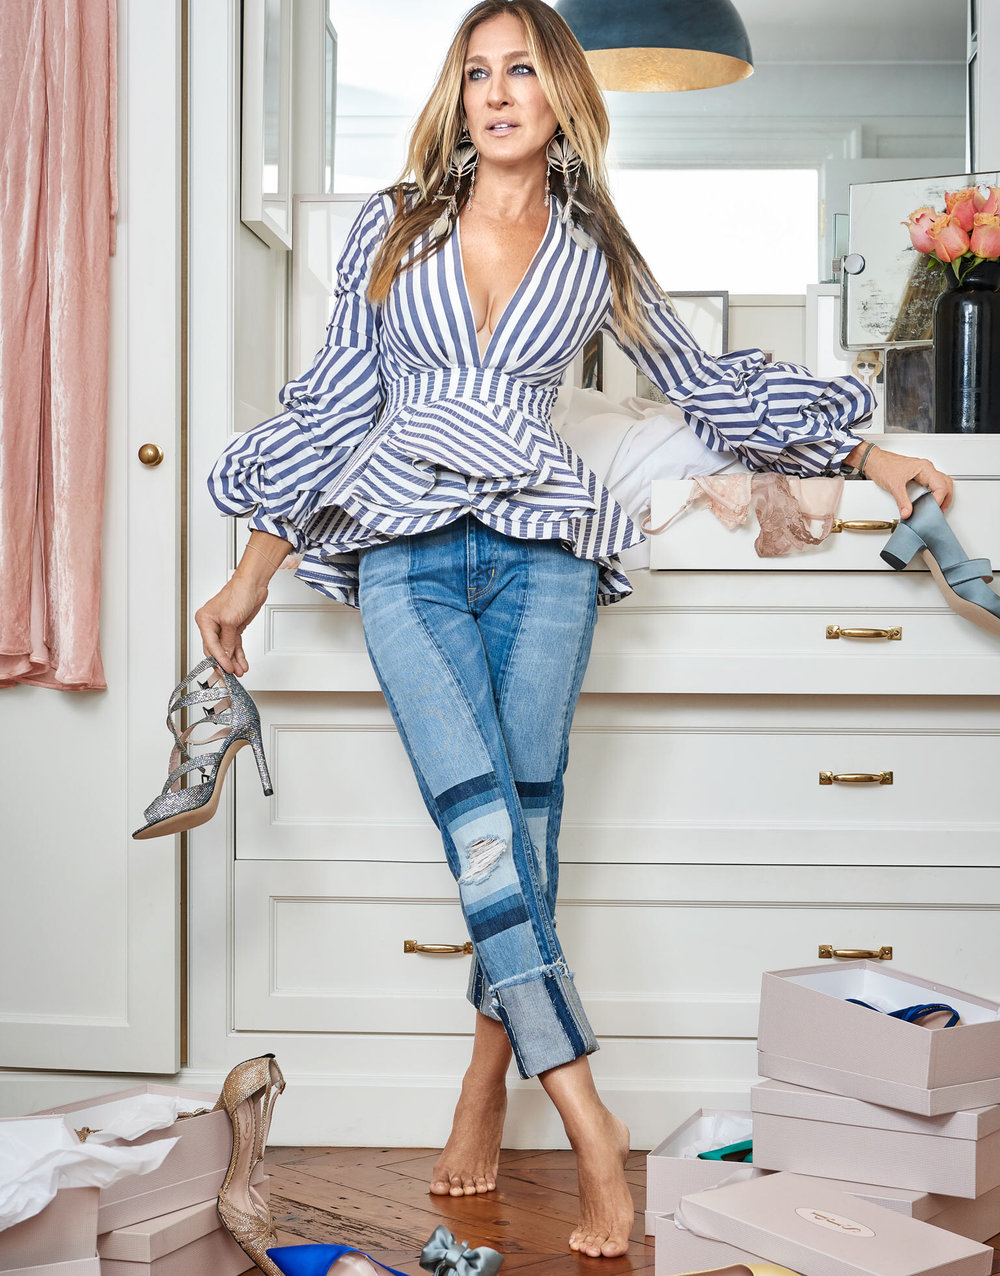 a82535adda7 Sarah Jessica Parker In  Running in Heels  By Liz Collins For The Edit  November 17